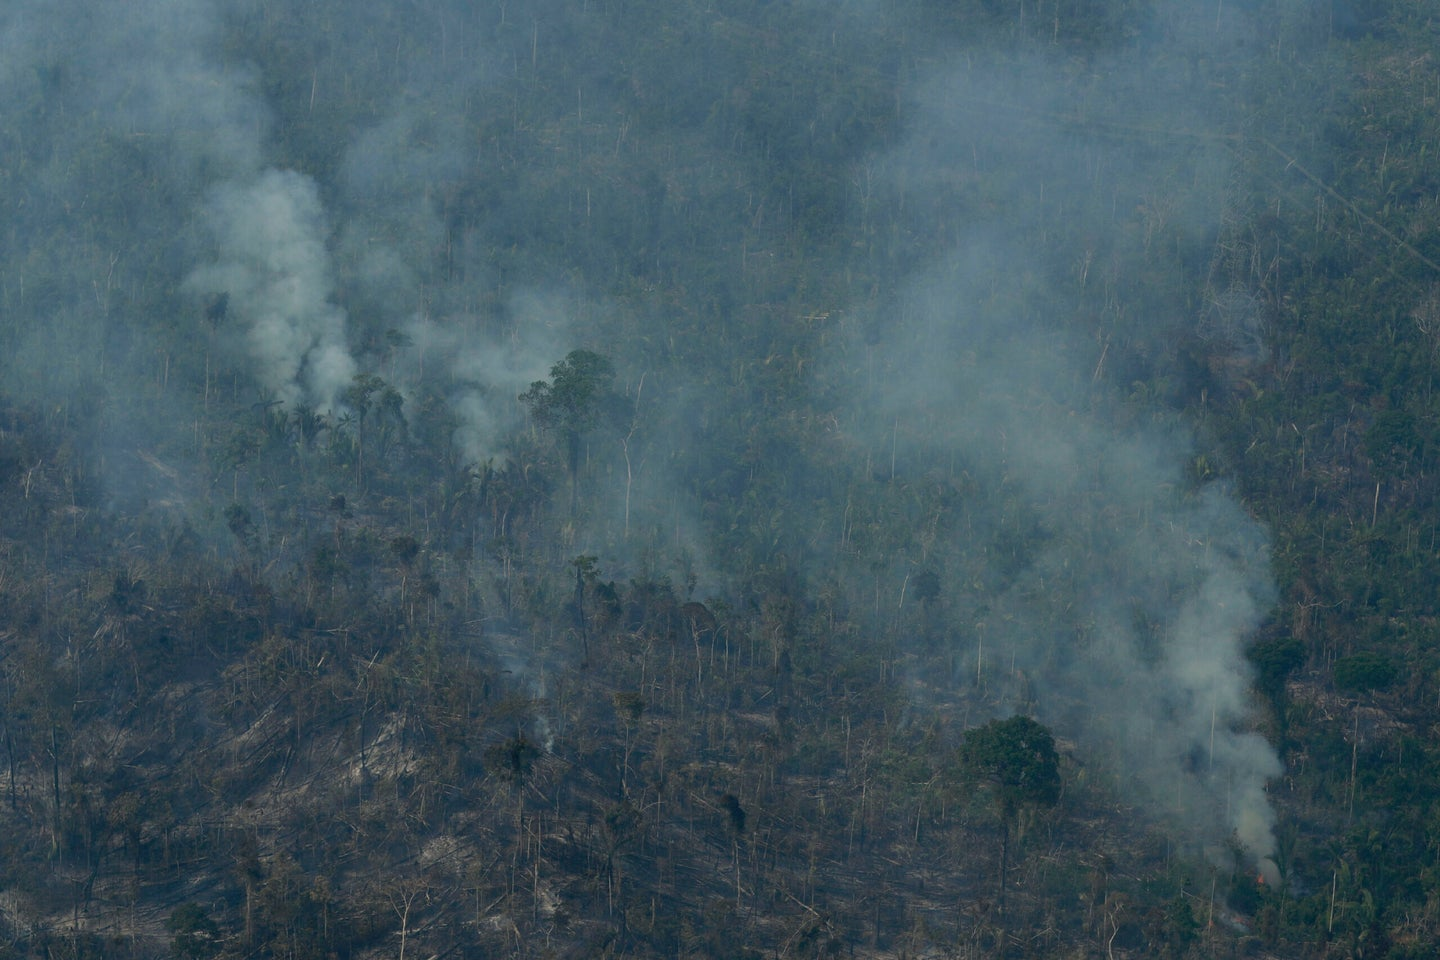 Fires in the Amazon have given us a lot to worry about, but the Earth's oxygen supply isn't one of them